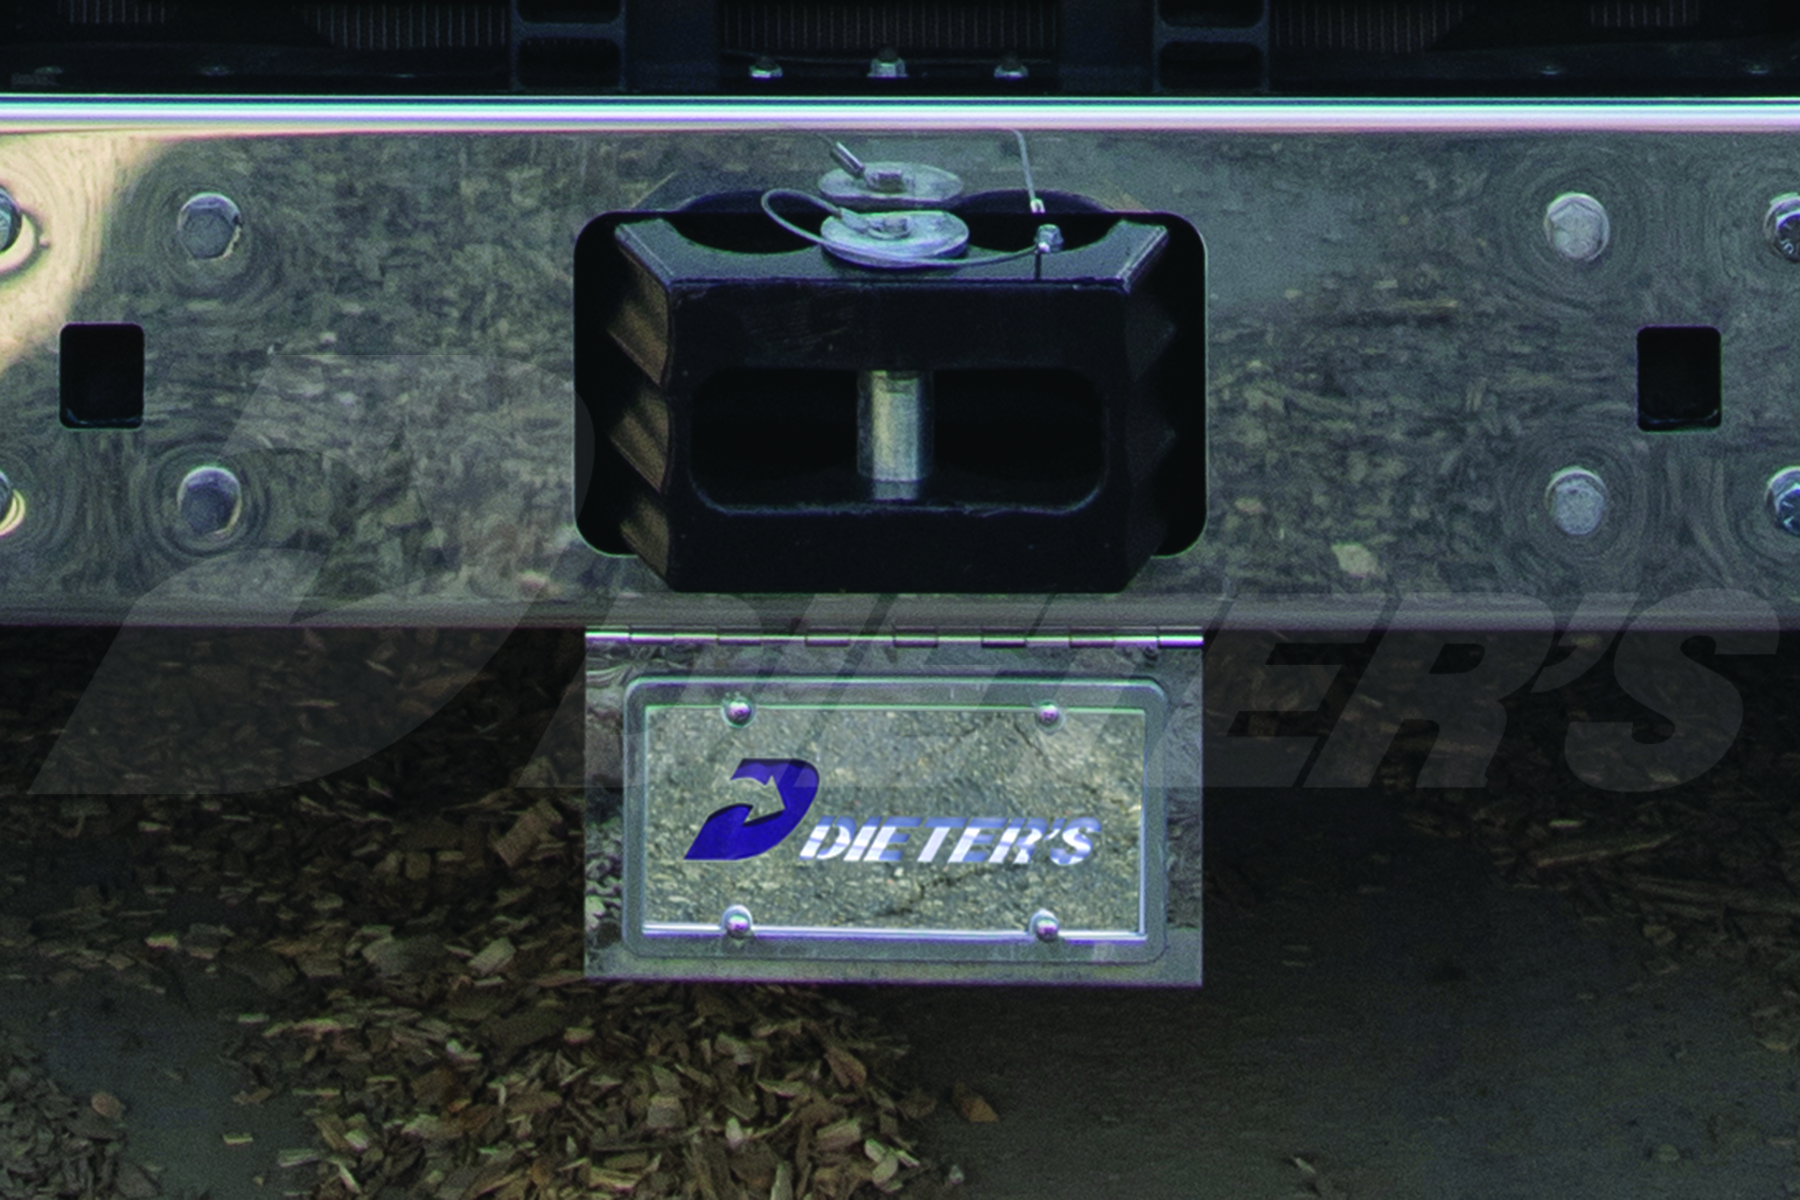 Under Bumper License Plate/Swing Plate image